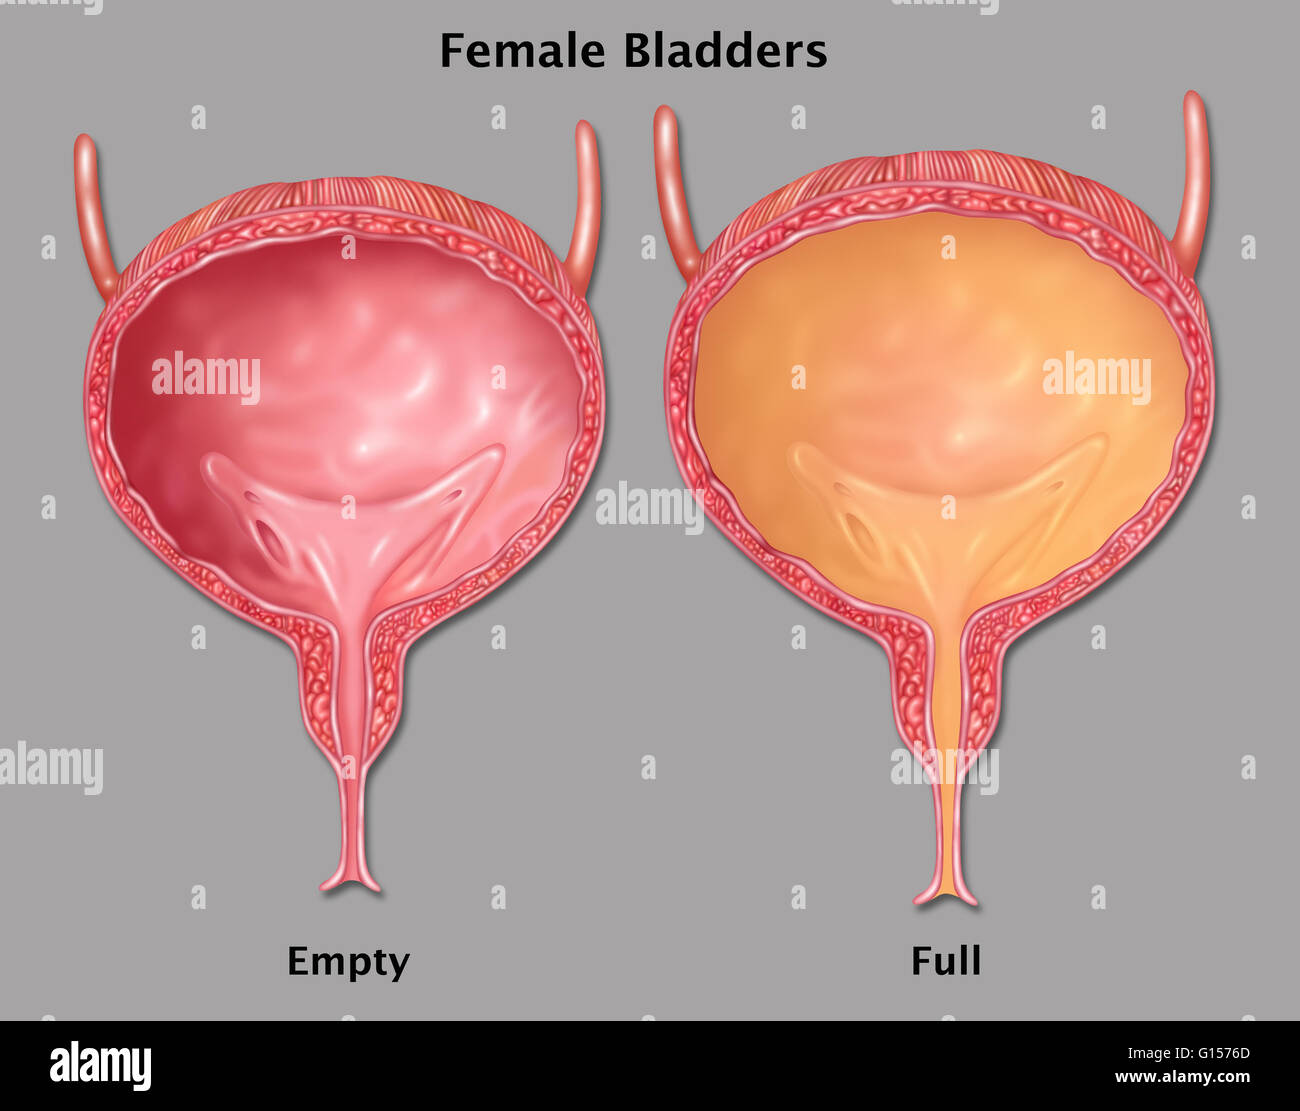 Illustration of a female bladder, empty at left and filled